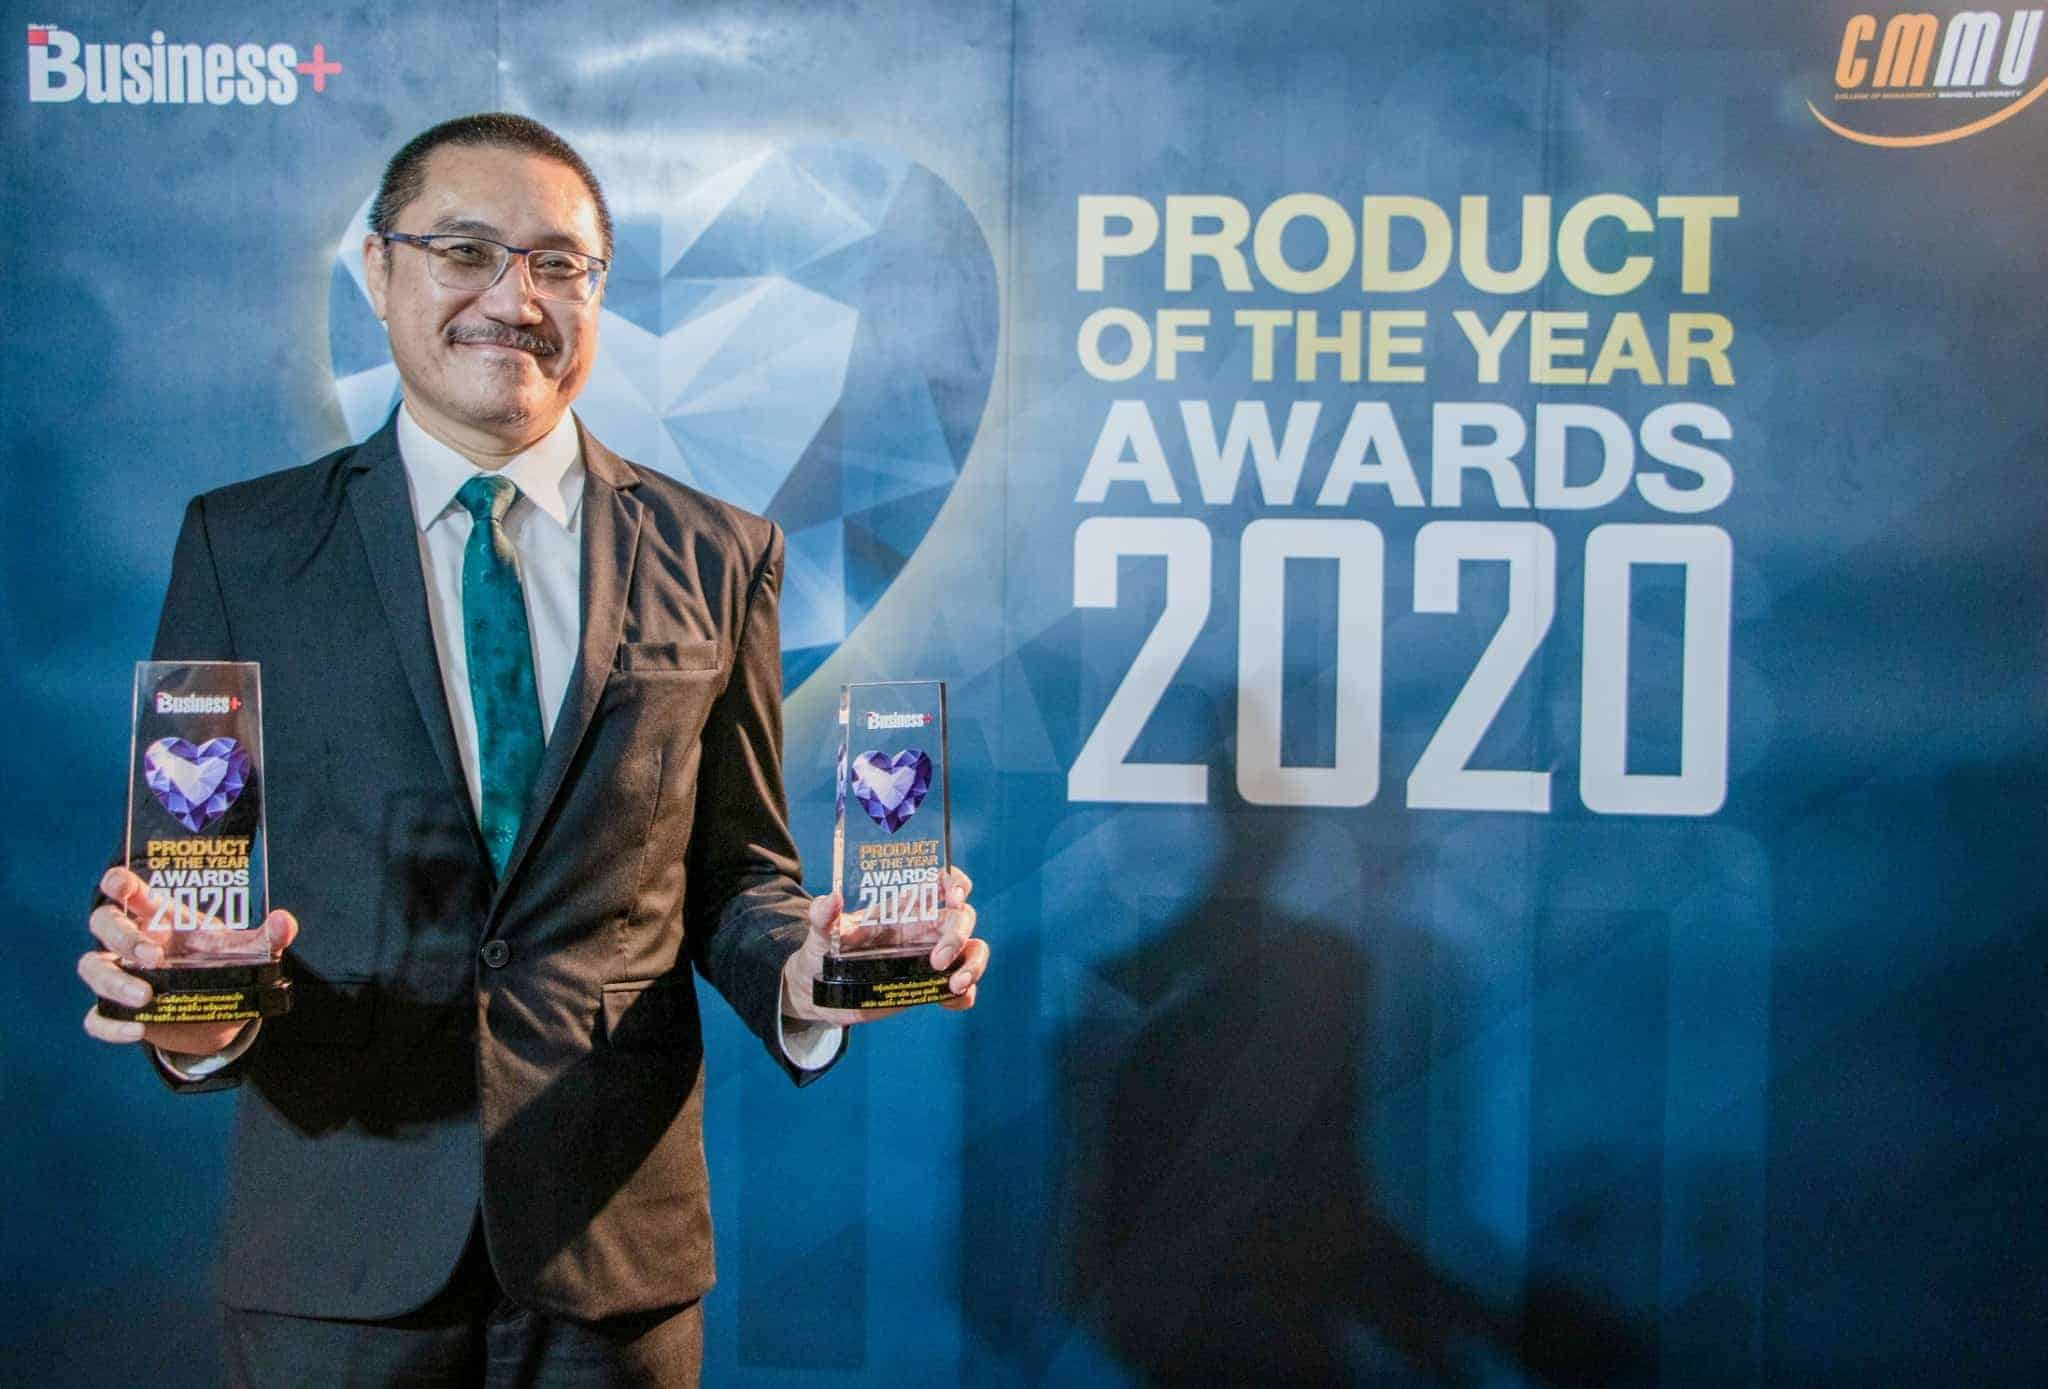 PRODUCT OF THE YEAR AWARDS 2020